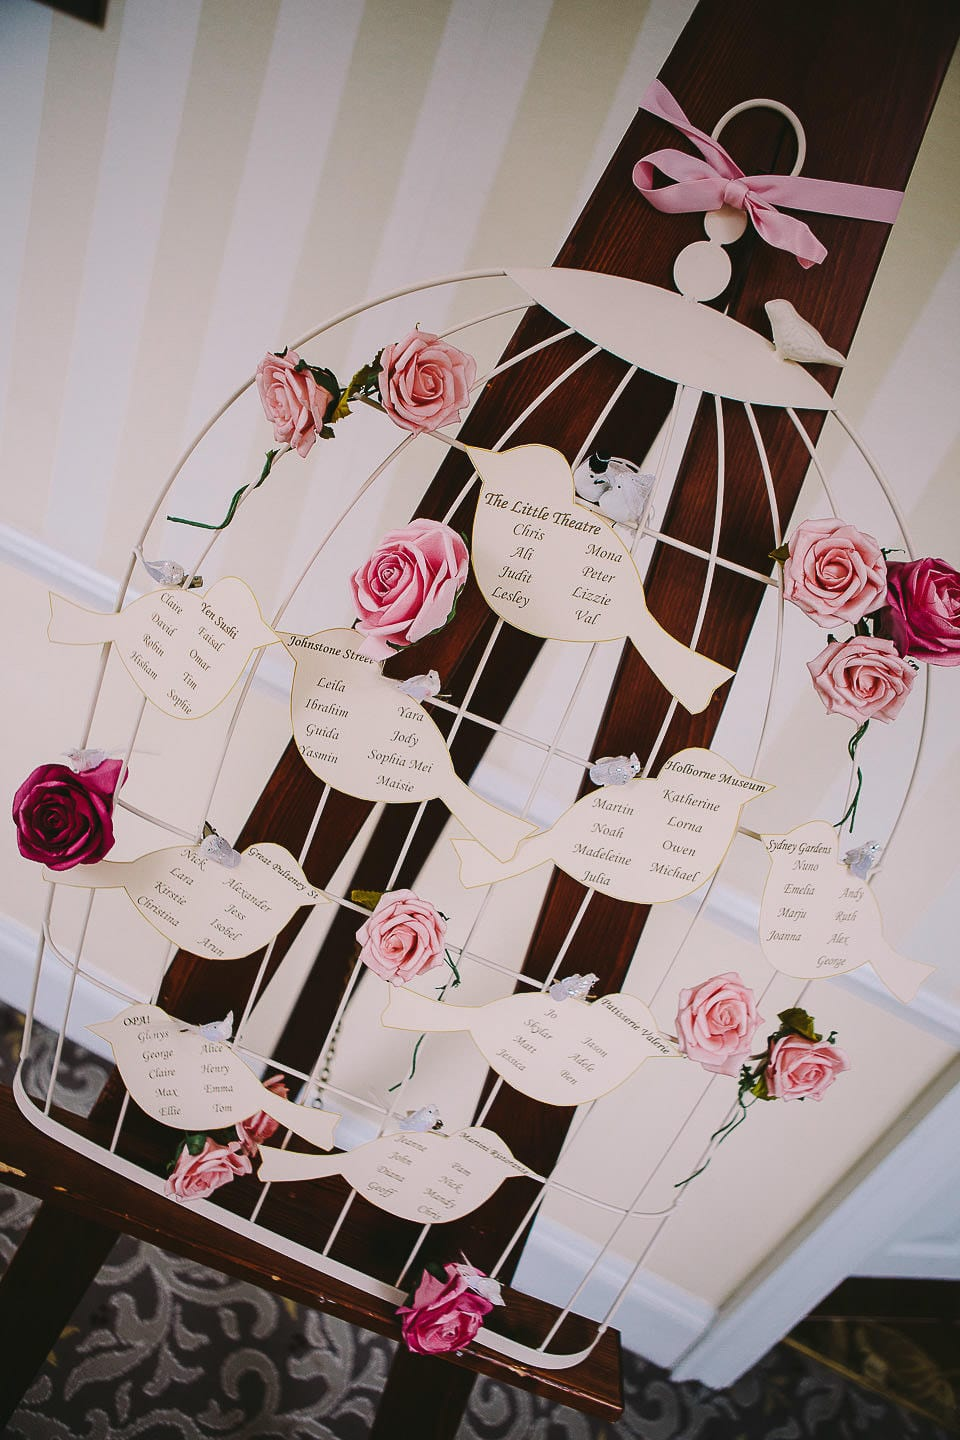 Birdcage themed table plan for the wedding breakfast at Bath Spa Hotel